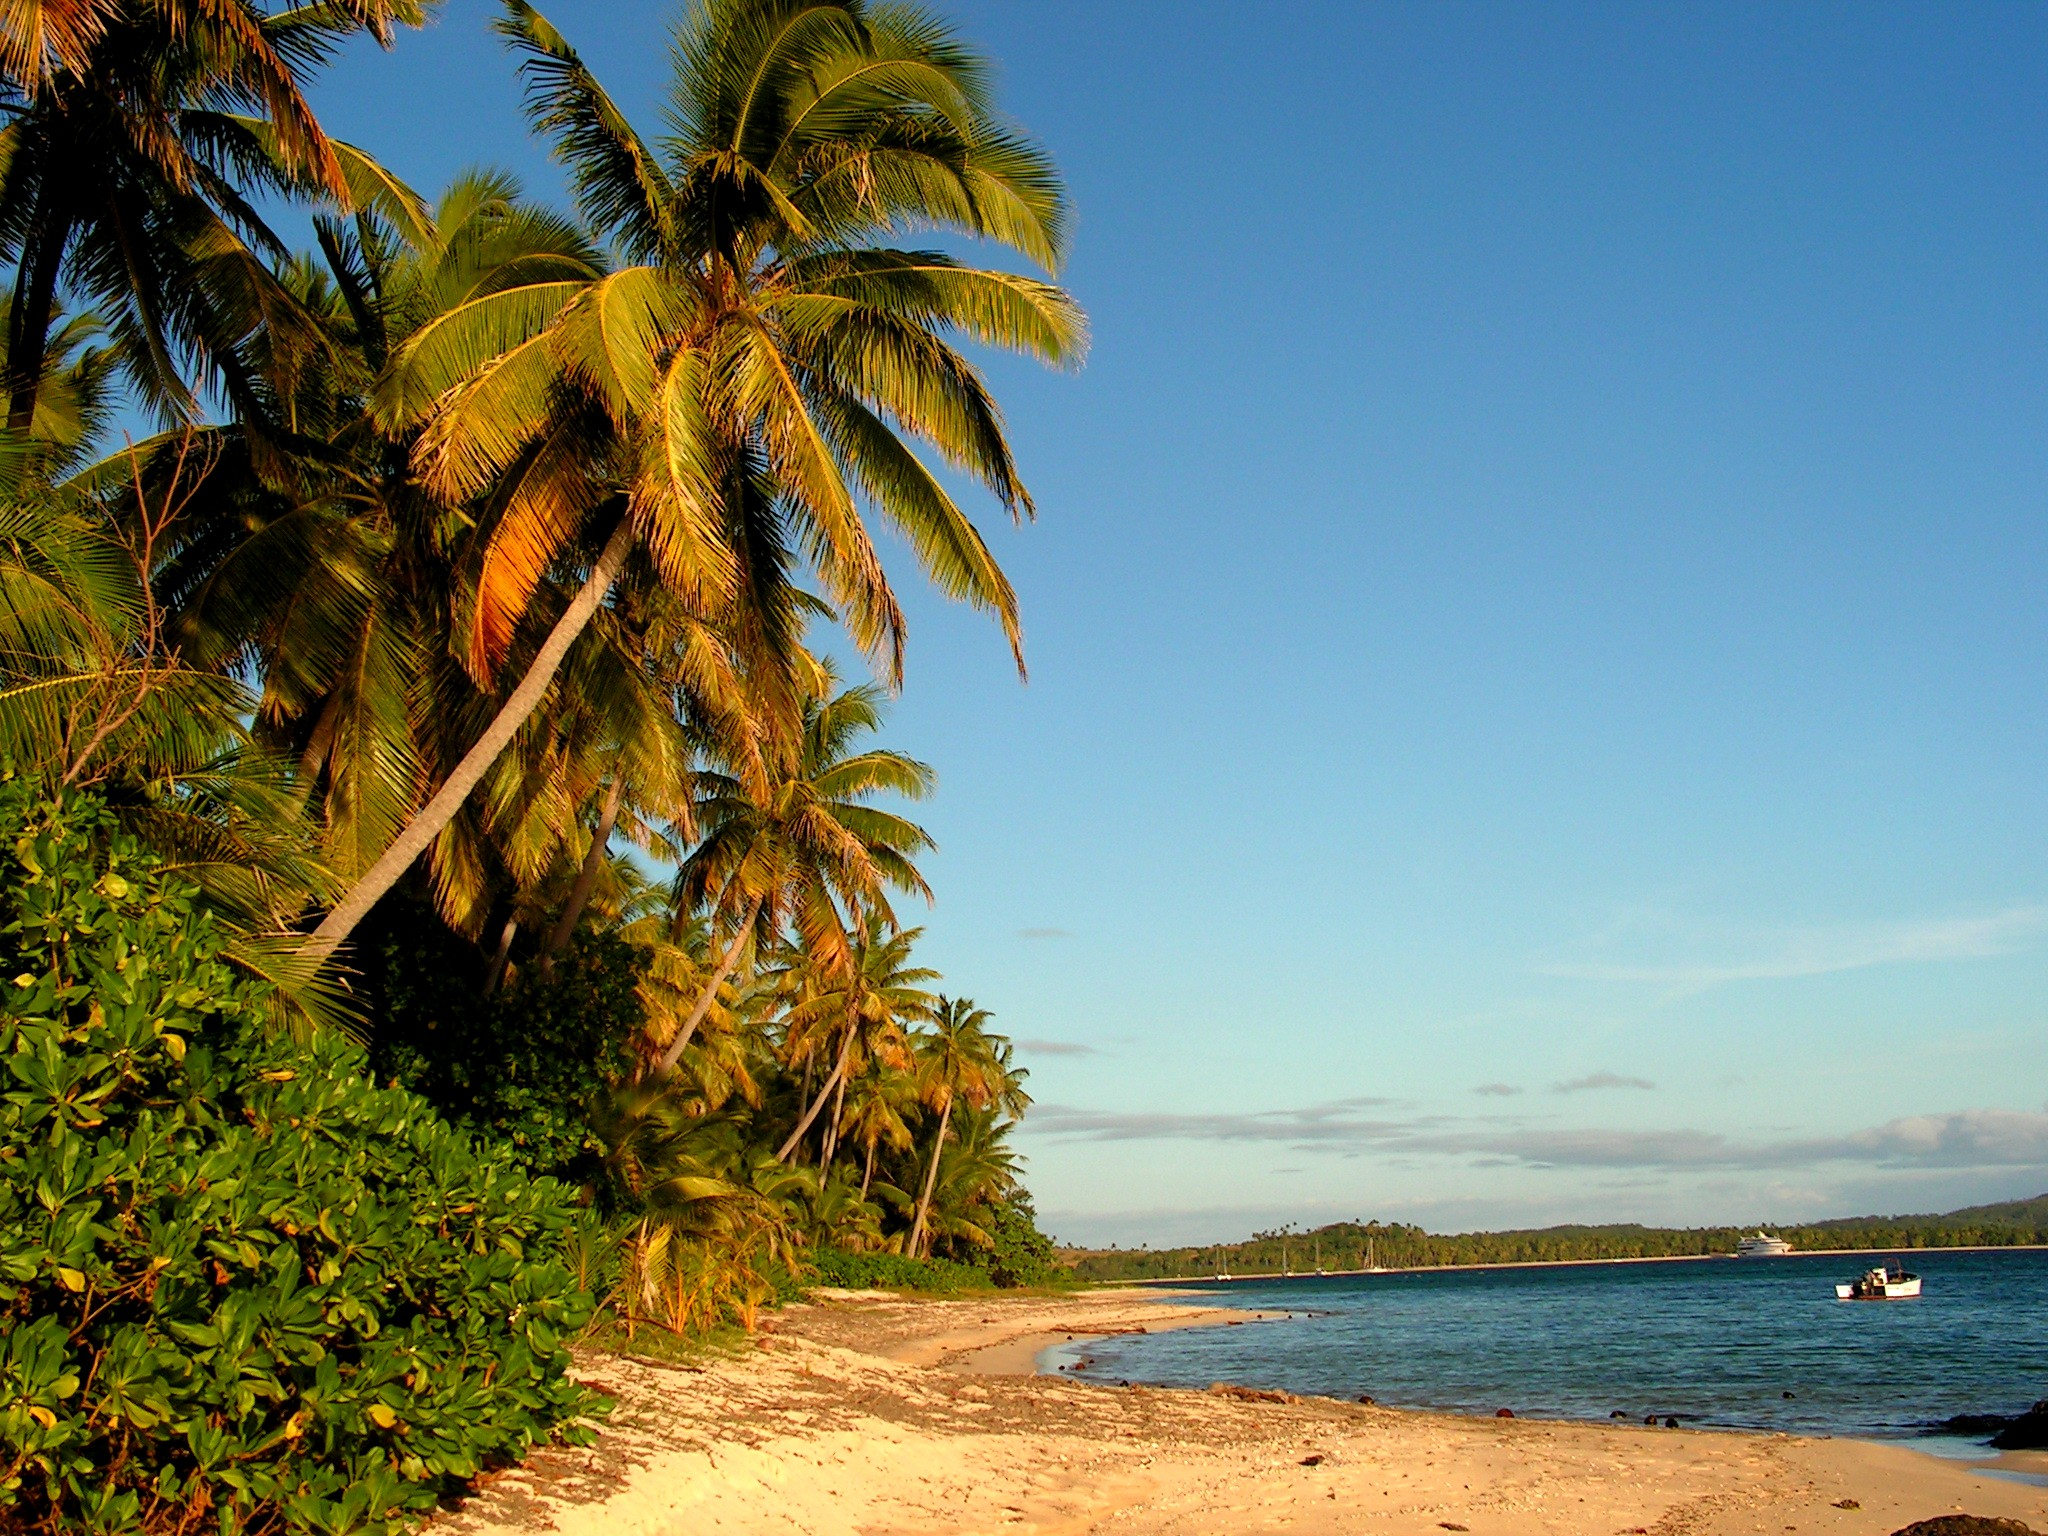 All about Fiji Islands for Kids - Image of the Point Beach in Fiji Islands - Fiji Islands Worksheet